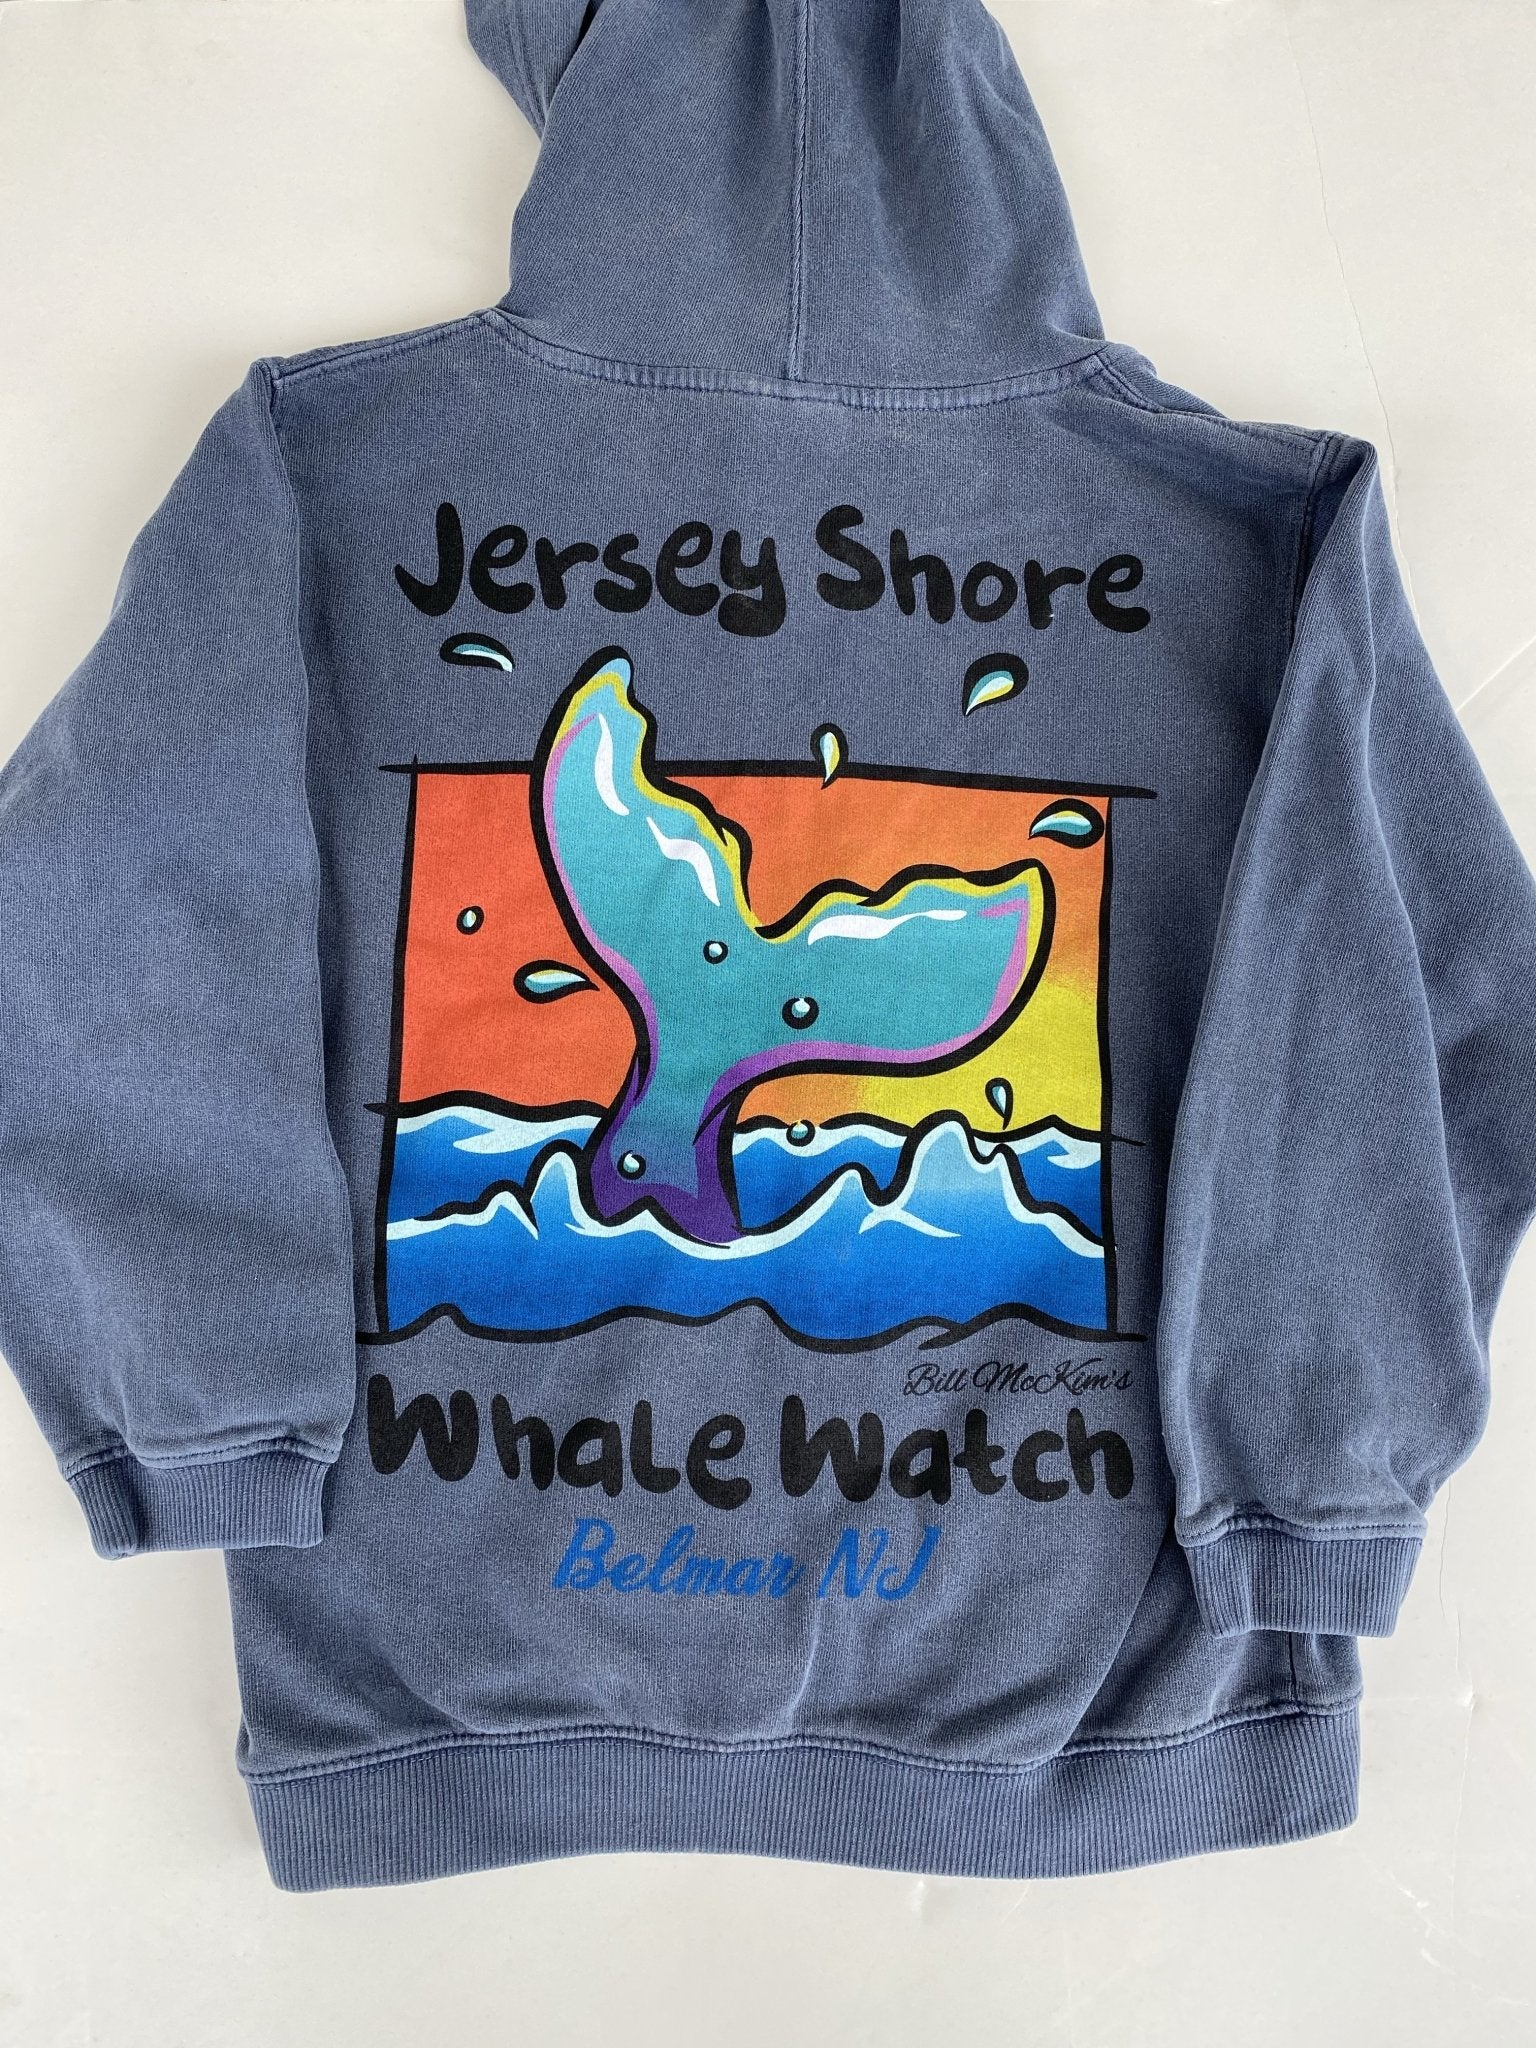 Child sized Jersey Shore Whale Watch Zipper Hooded Sweatshirt - Bill McKim Photography -Jersey Shore whale watch tours